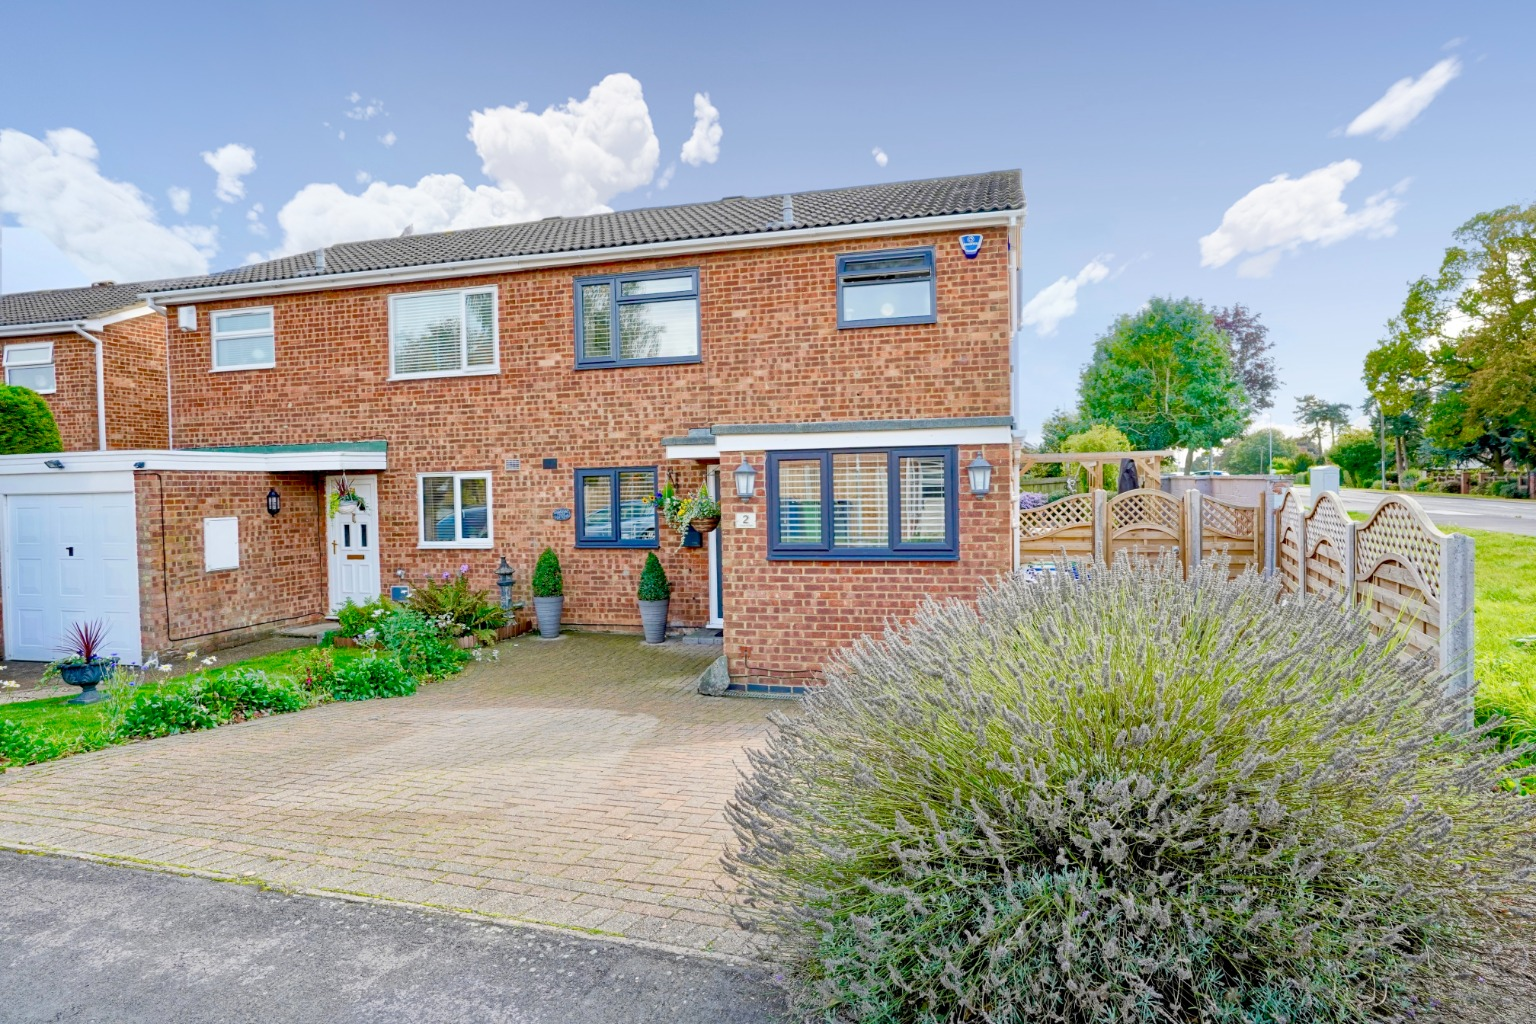 3 bed  for sale in Lowry Road, St. Neots, PE19